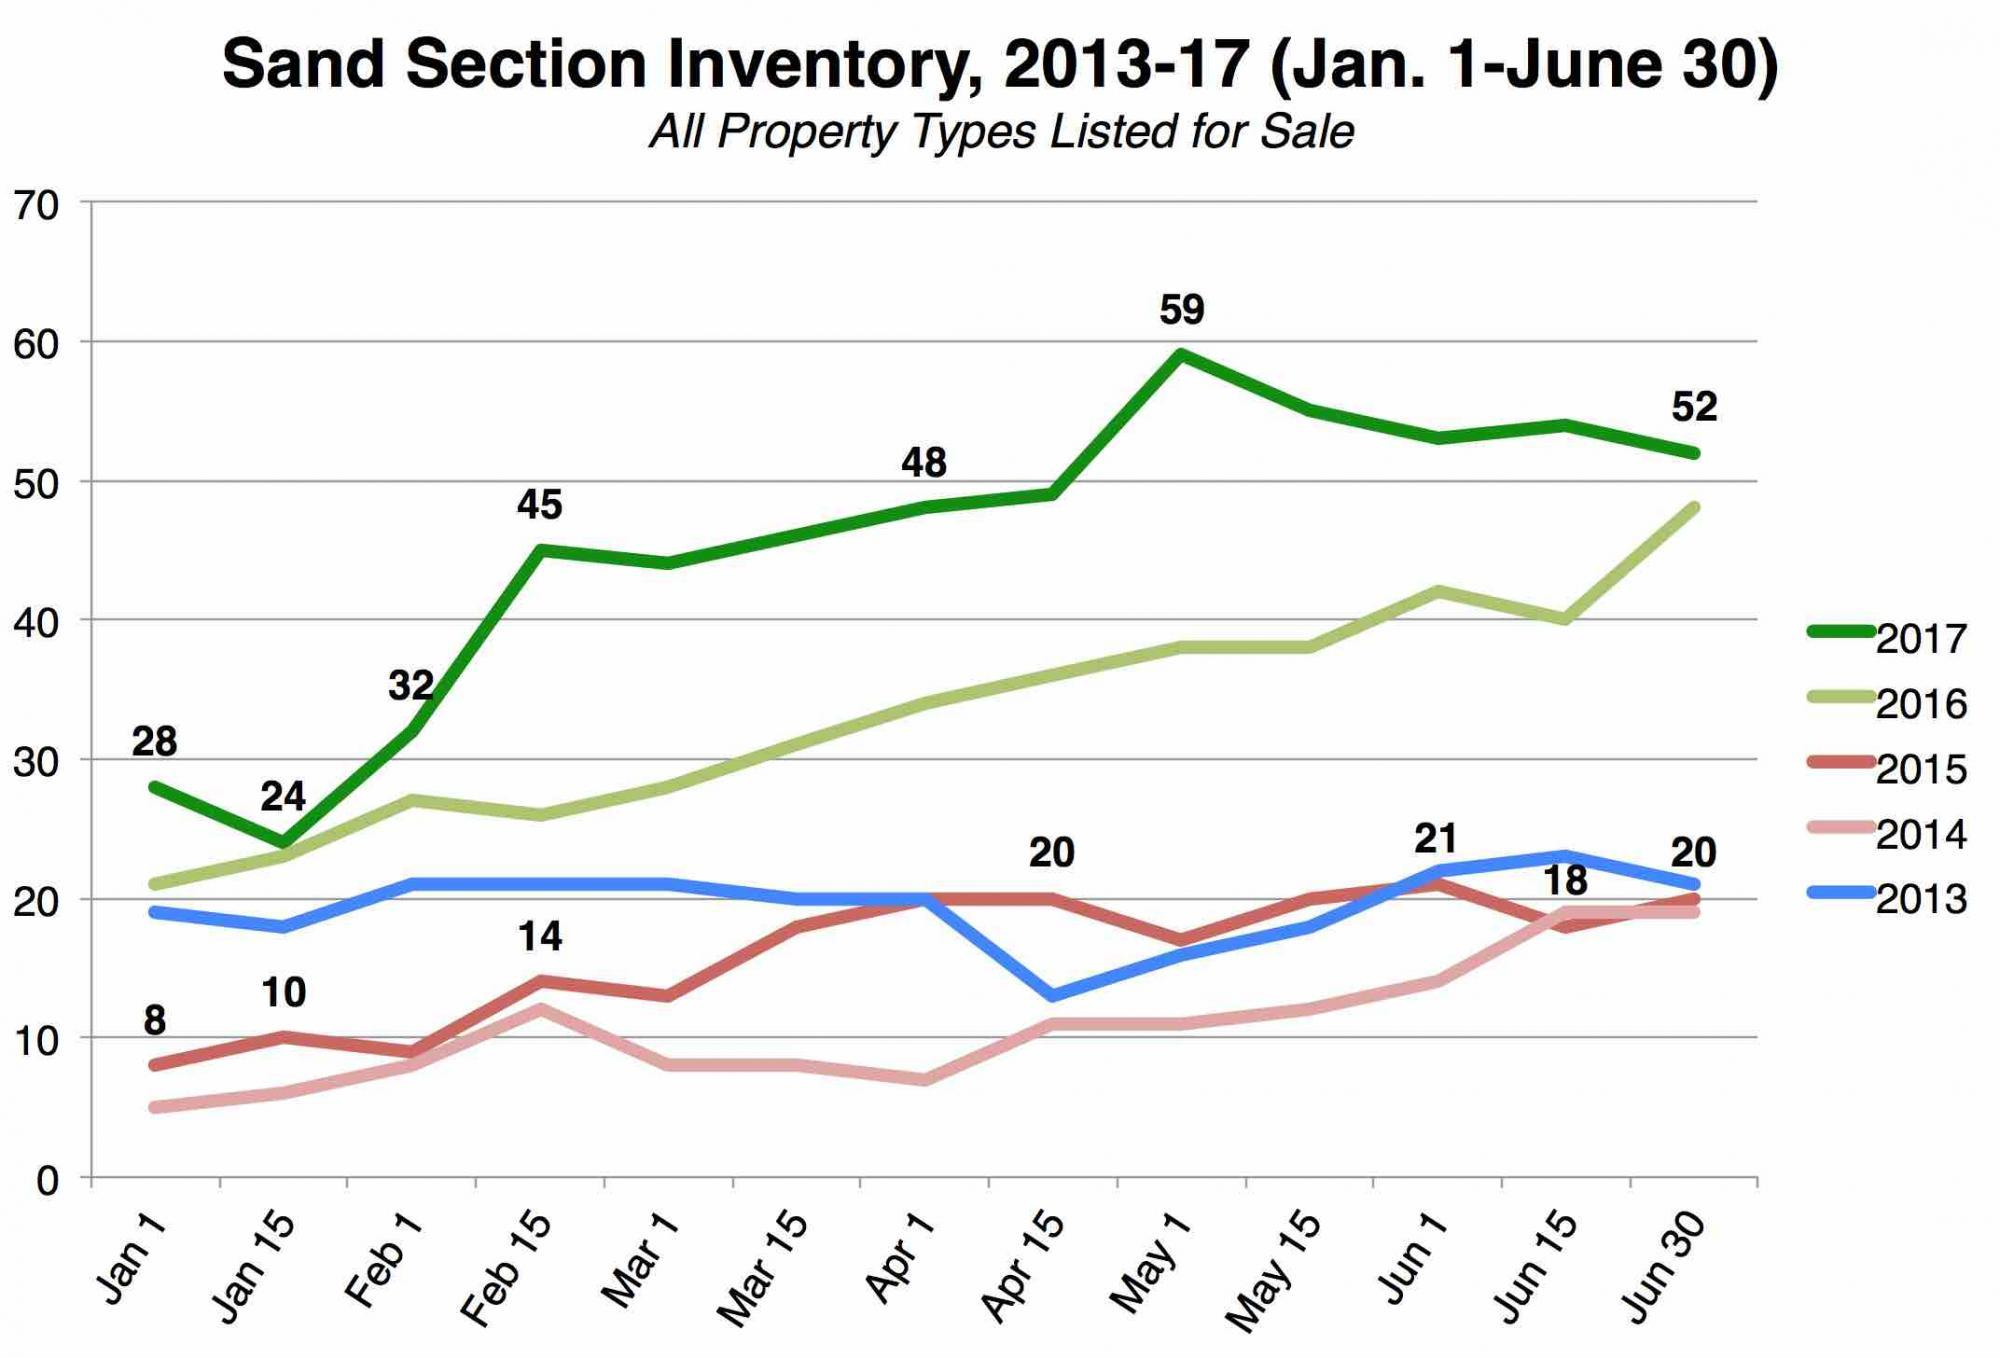 manhattan-beach-sand-section-inventory-2017